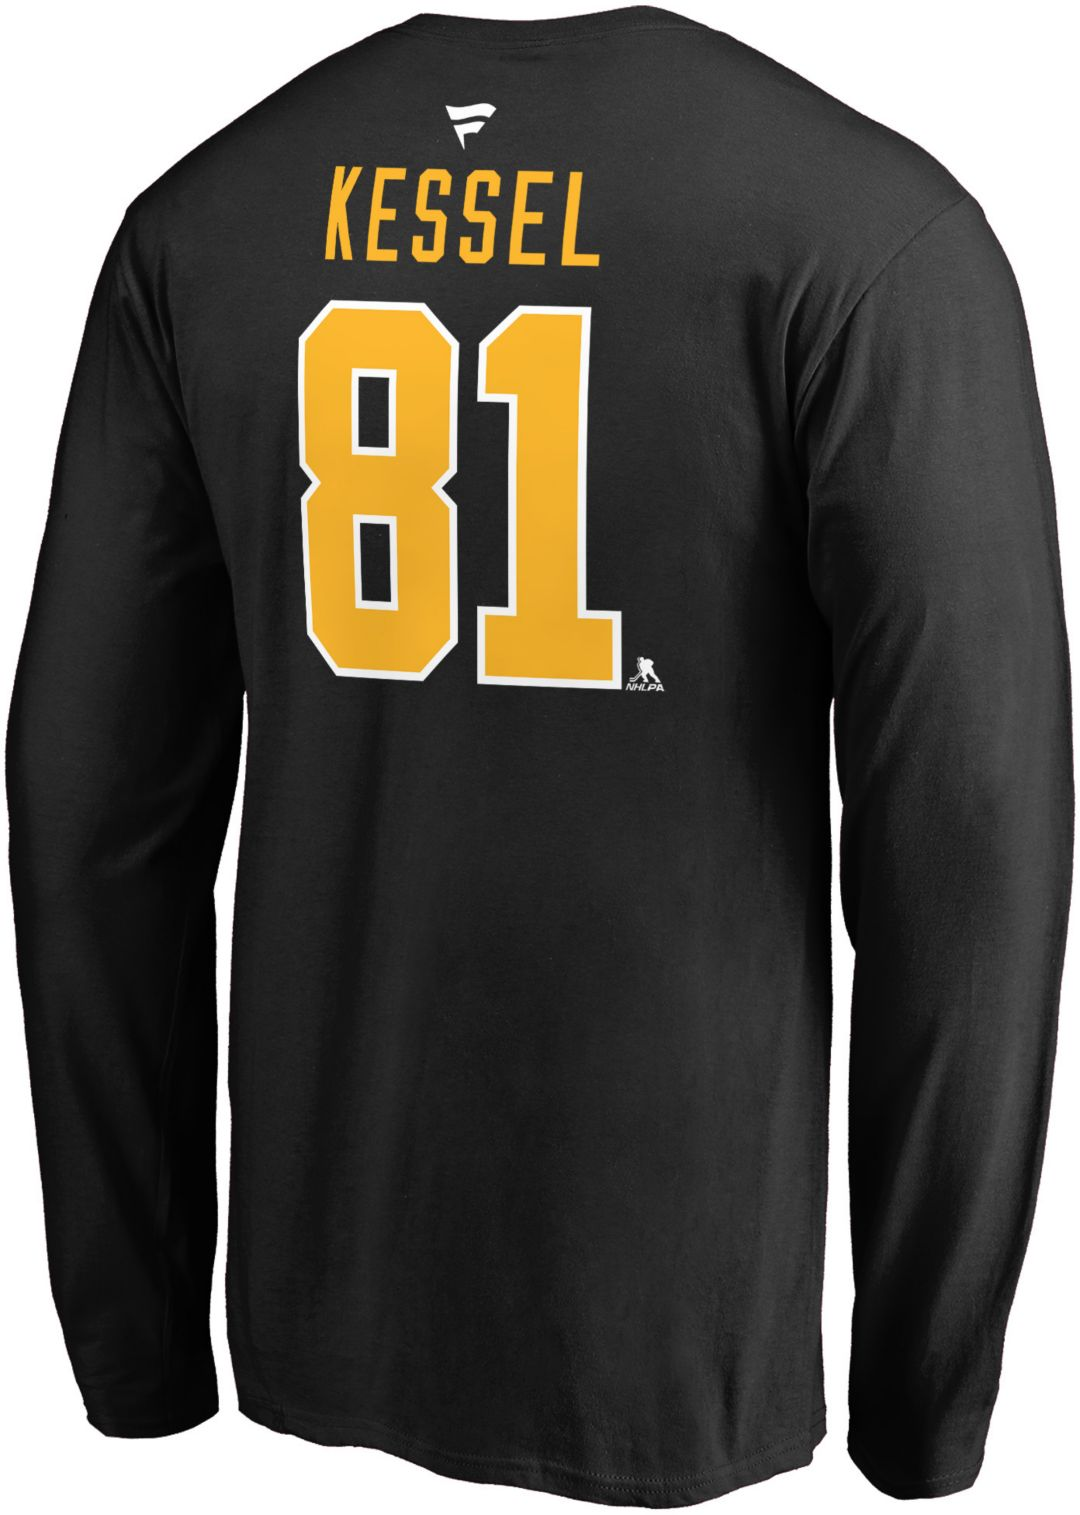 sale retailer 53514 ab5e0 NHL Men's Pittsburgh Penguins Phil Kessel #81 Black Long Sleeve Player Shirt